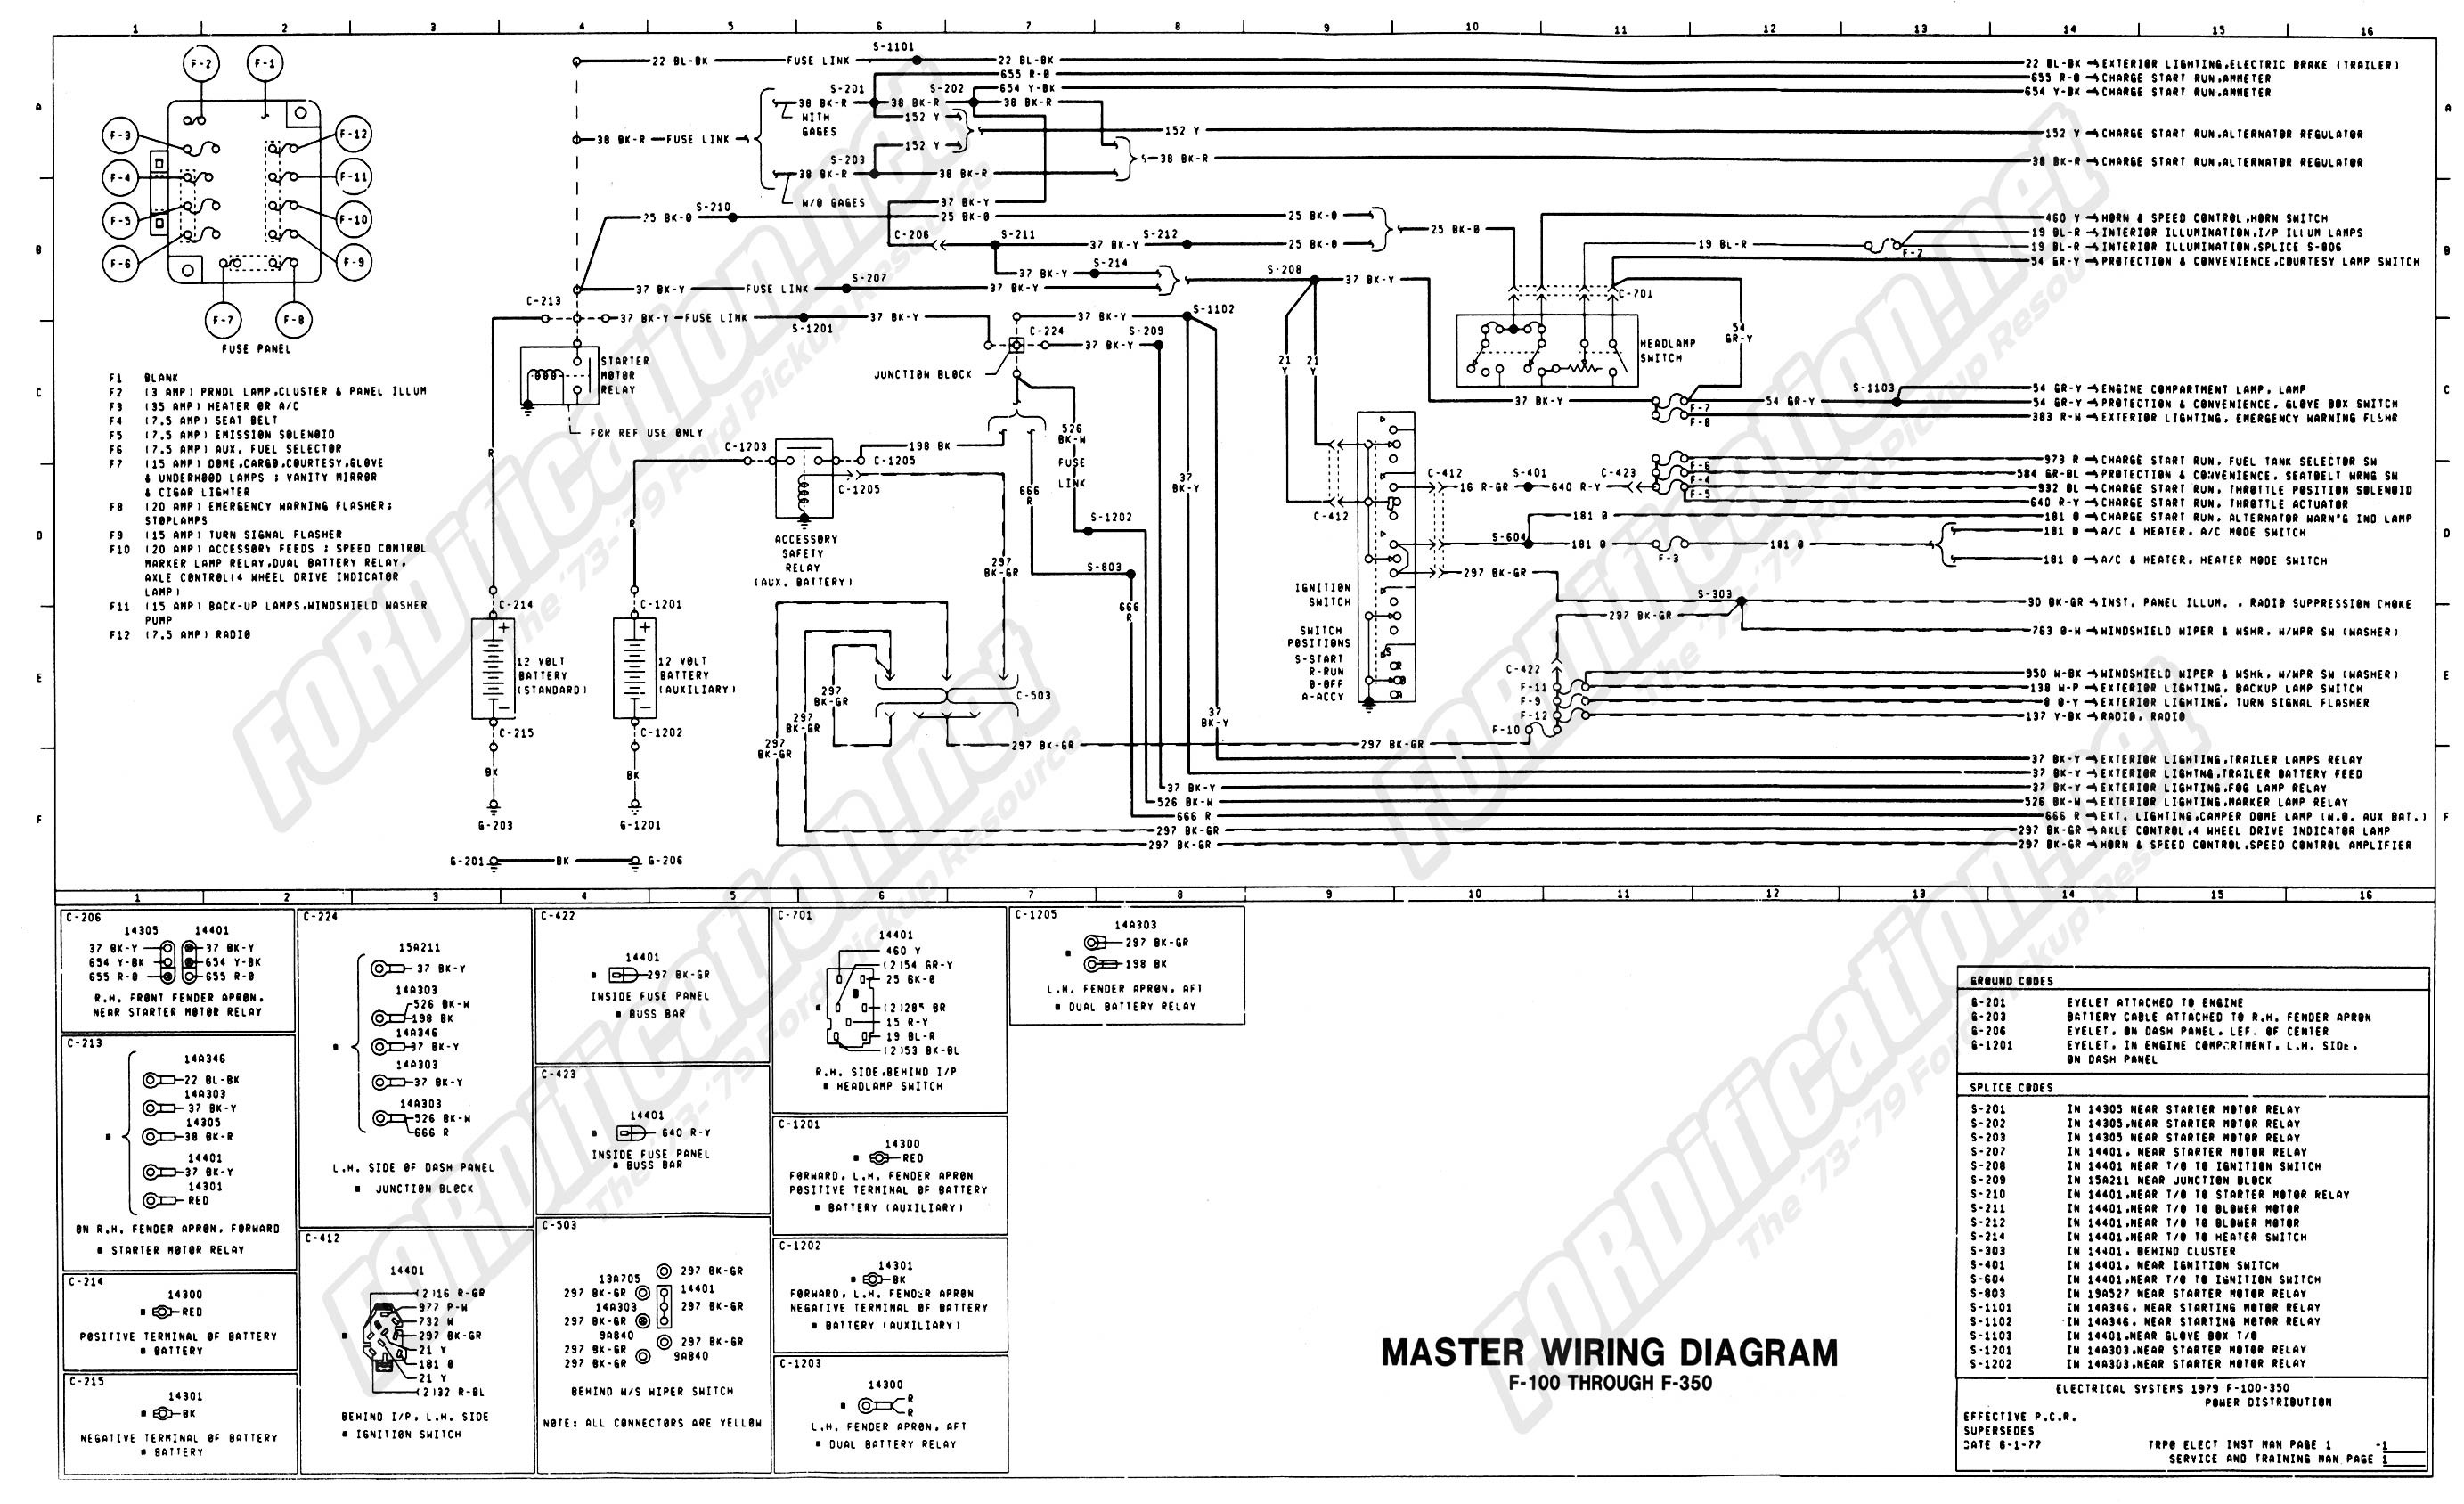 1983 chevy starter solenoid diagram